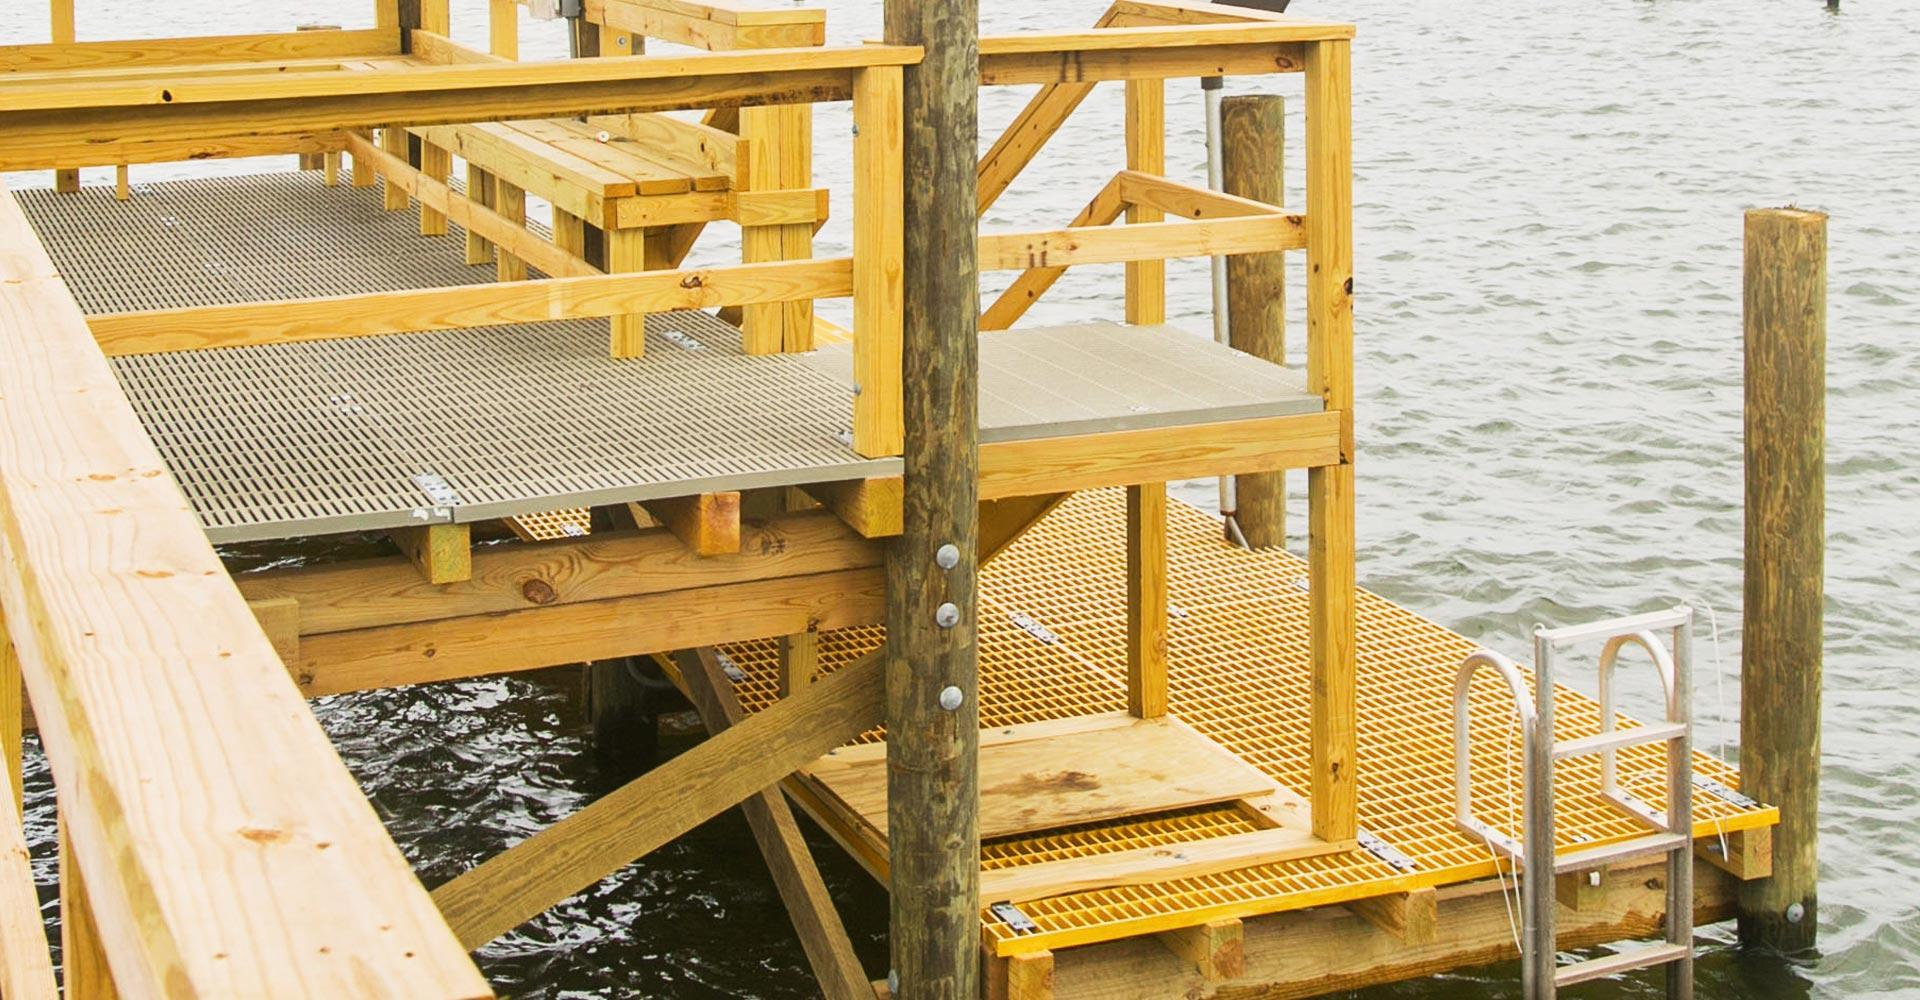 waterfront dock contractor